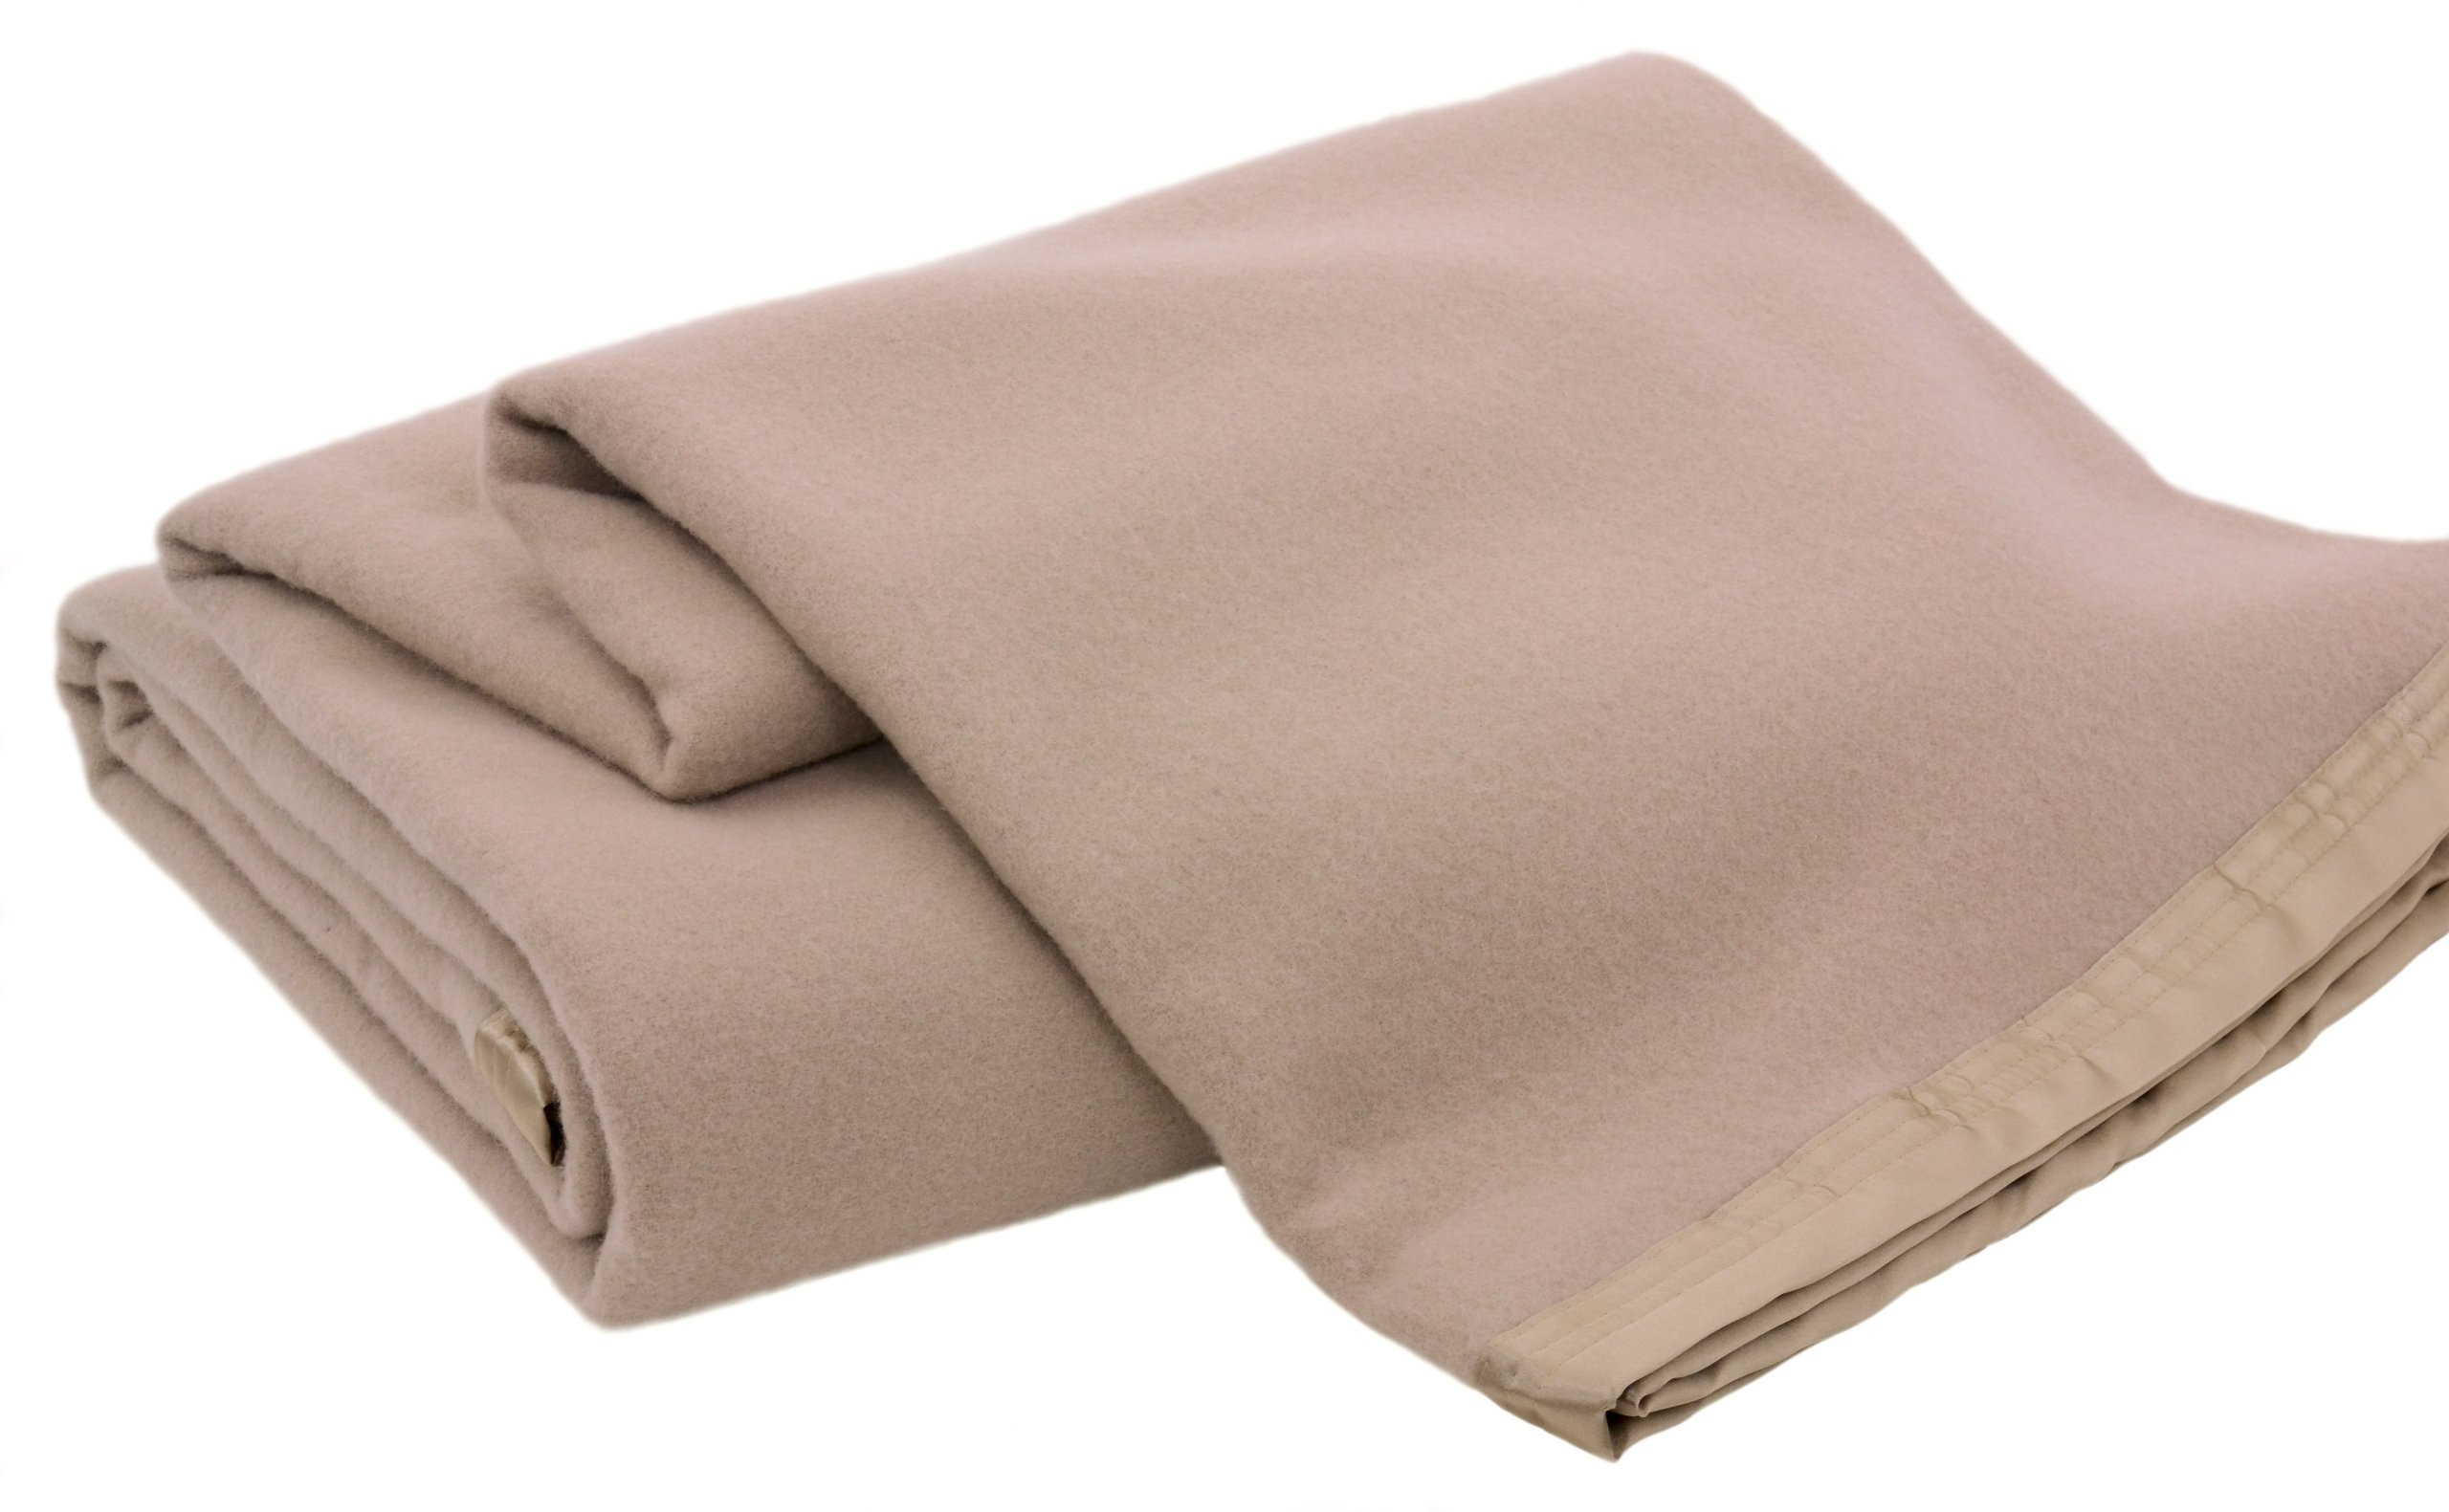 Creswick Luxurious All-Natural 100-Percent Australian Merino Wool Oversized Blanket, King Size, Sahara by Creswick Australian Mills